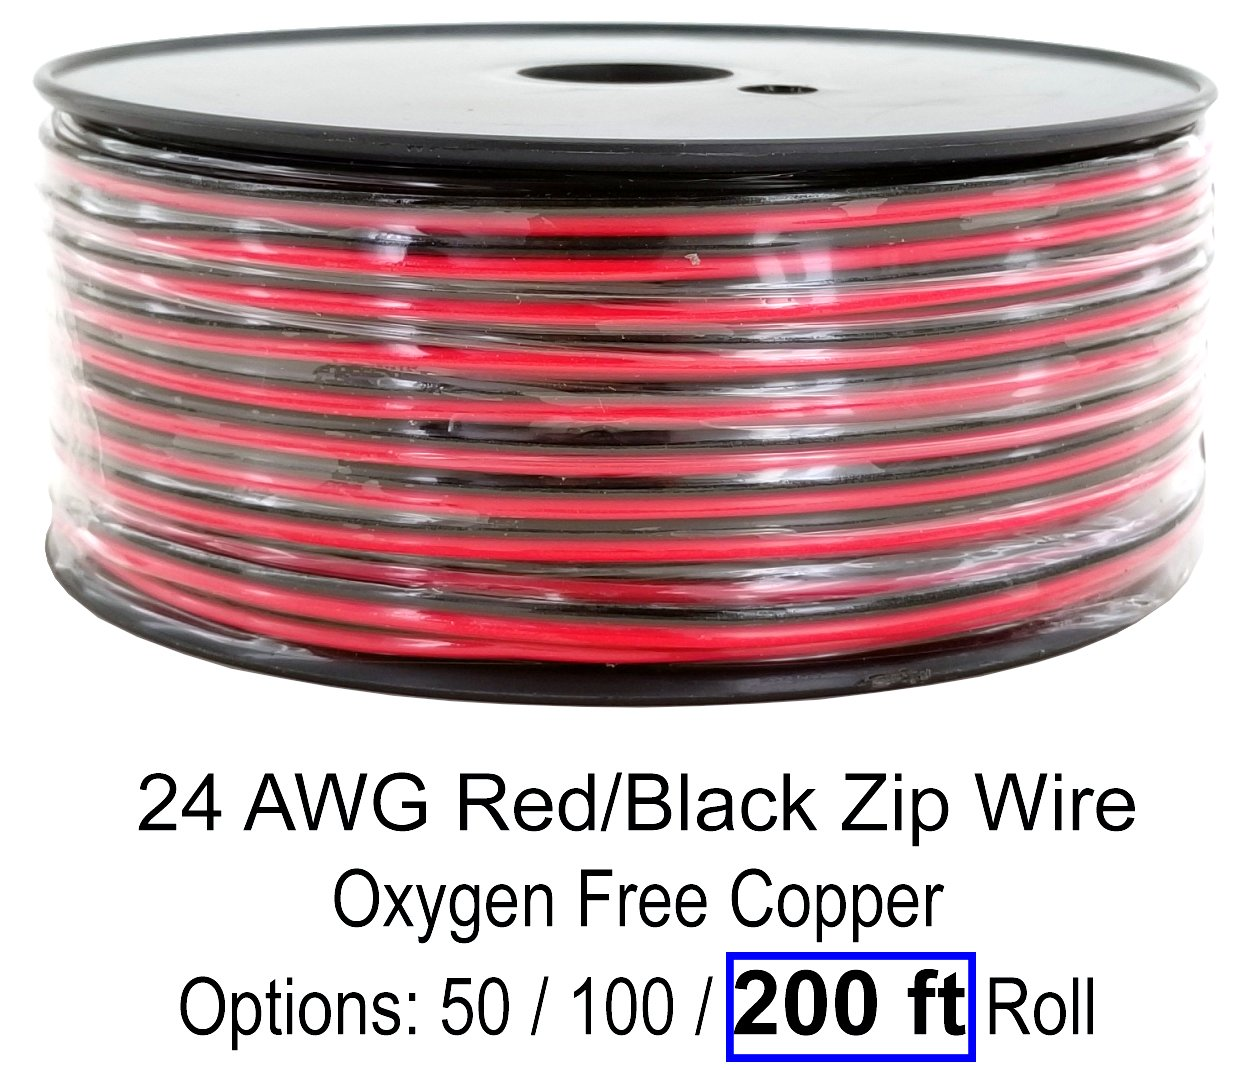 GS Power 24 AWG (American Wire Gauge) 200 Feet 99.9% OFC Oxygen Free Copper, Red Black Bonded Zip Cord Speaker Cable for Car Audio, Home Theater, LED Strip Light (Also Available in 50' & 100' roll)